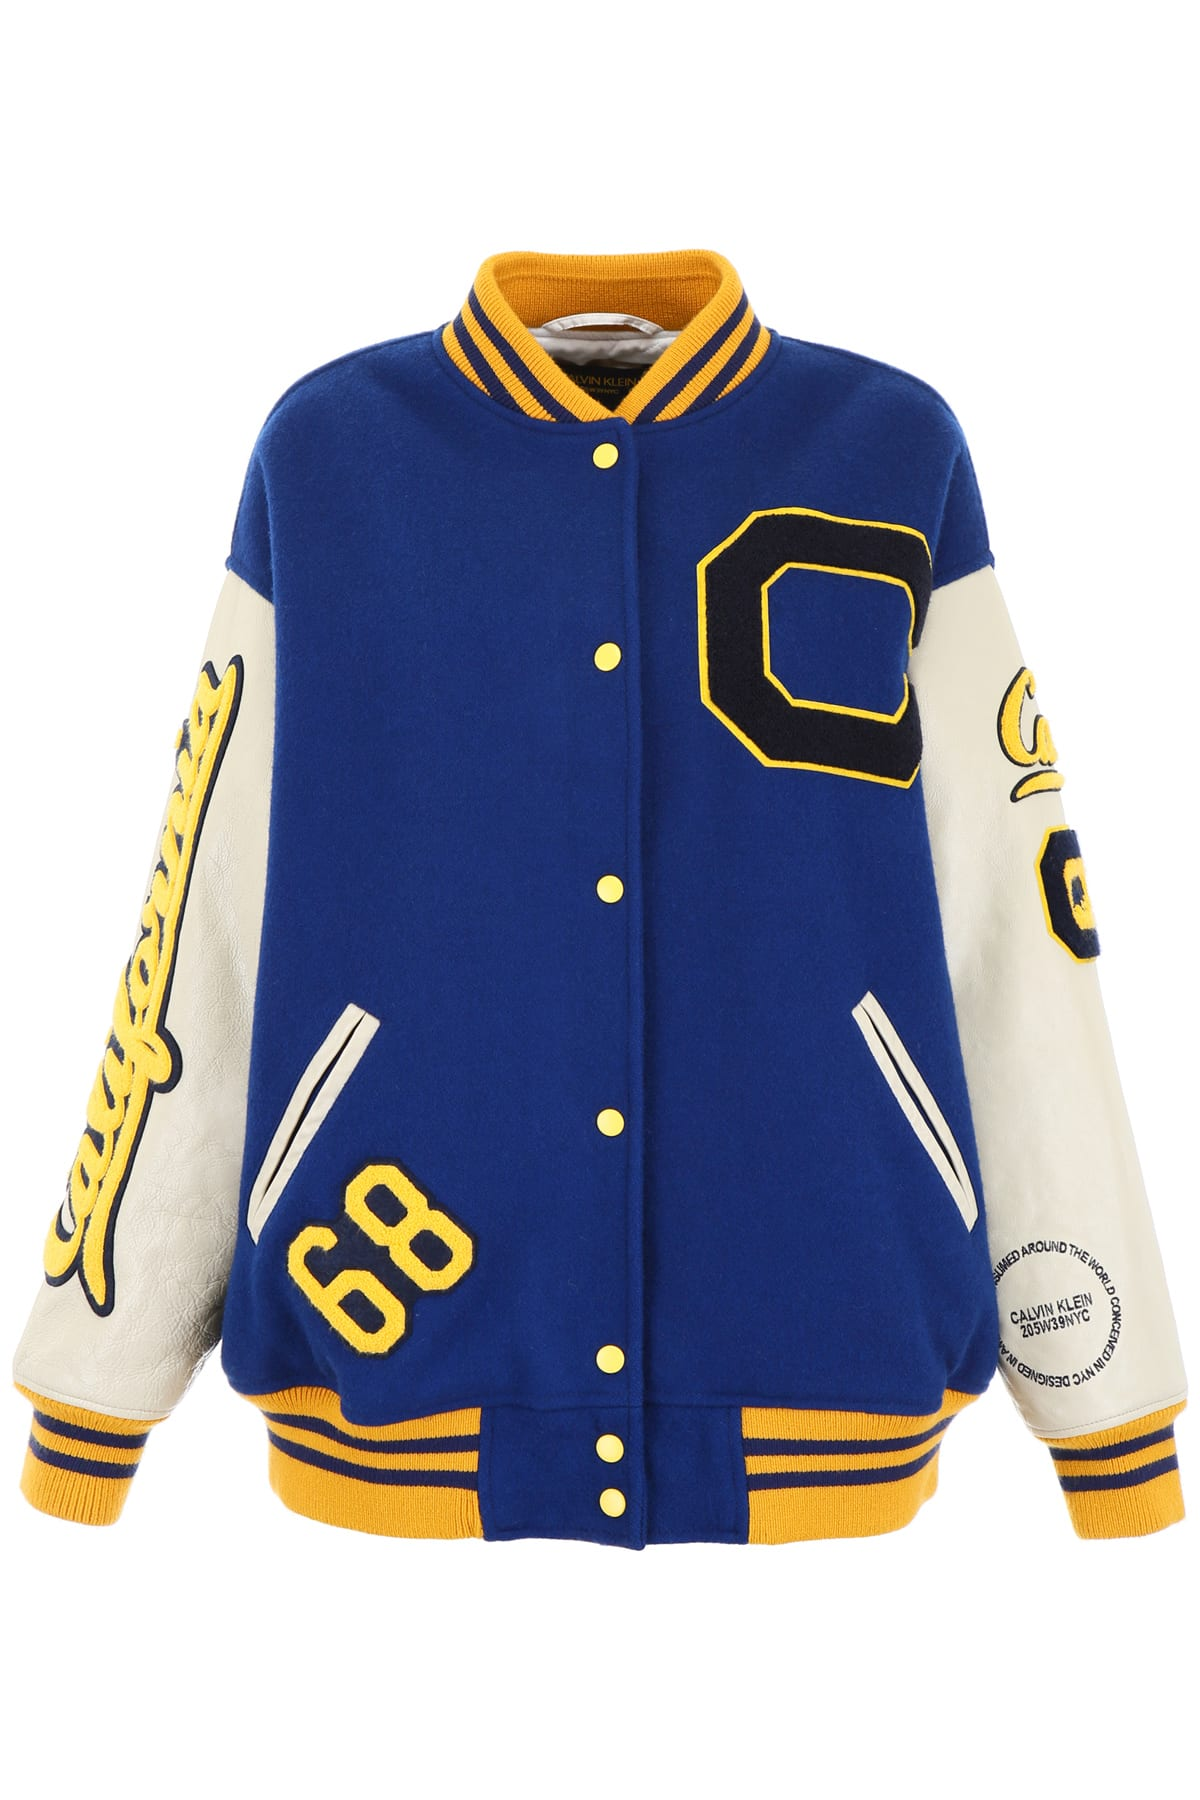 Calvin Klein Berkeley University Bomber Jacket